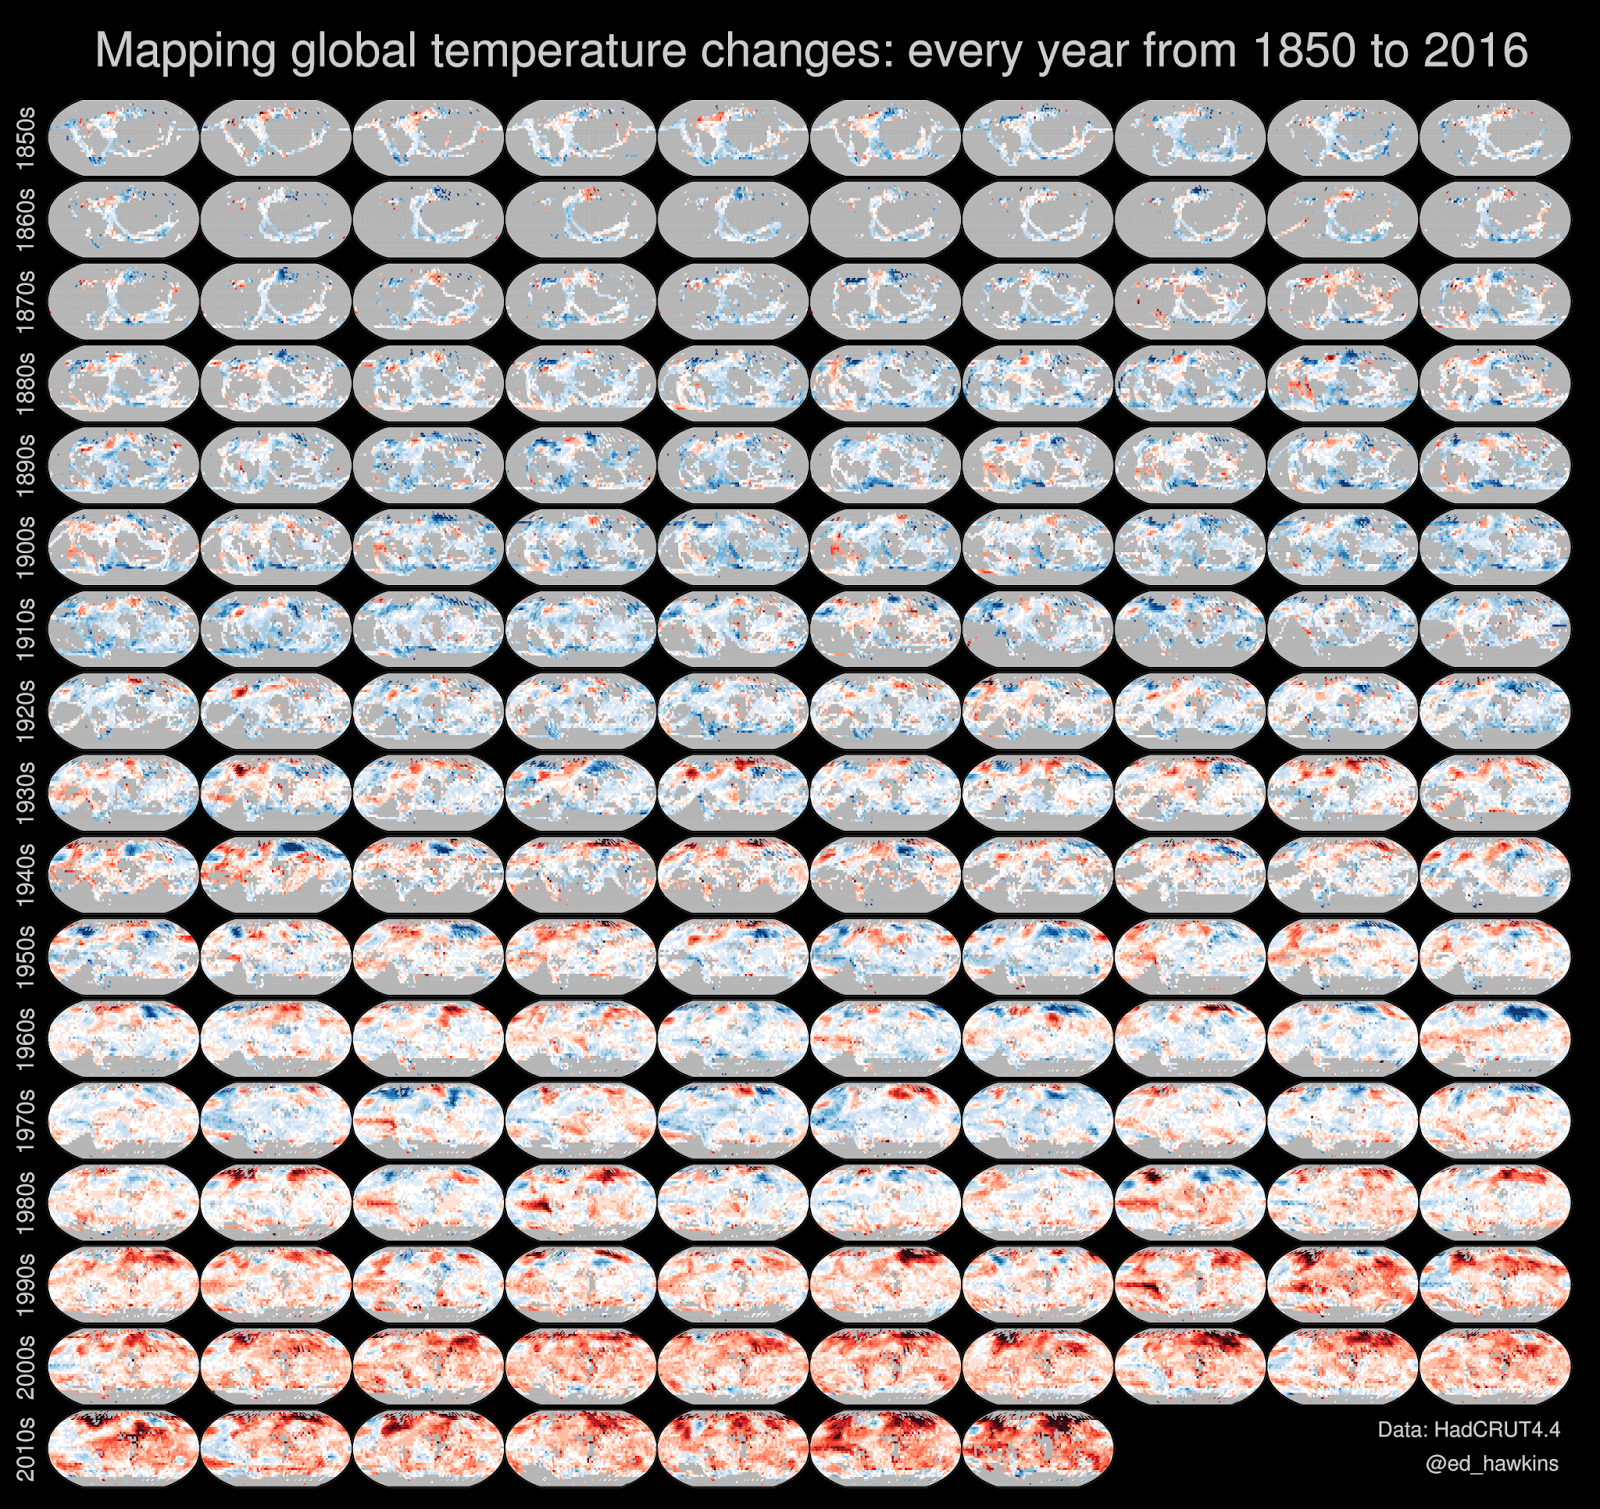 Mapping global temperature change: every year from 1850 to 2016